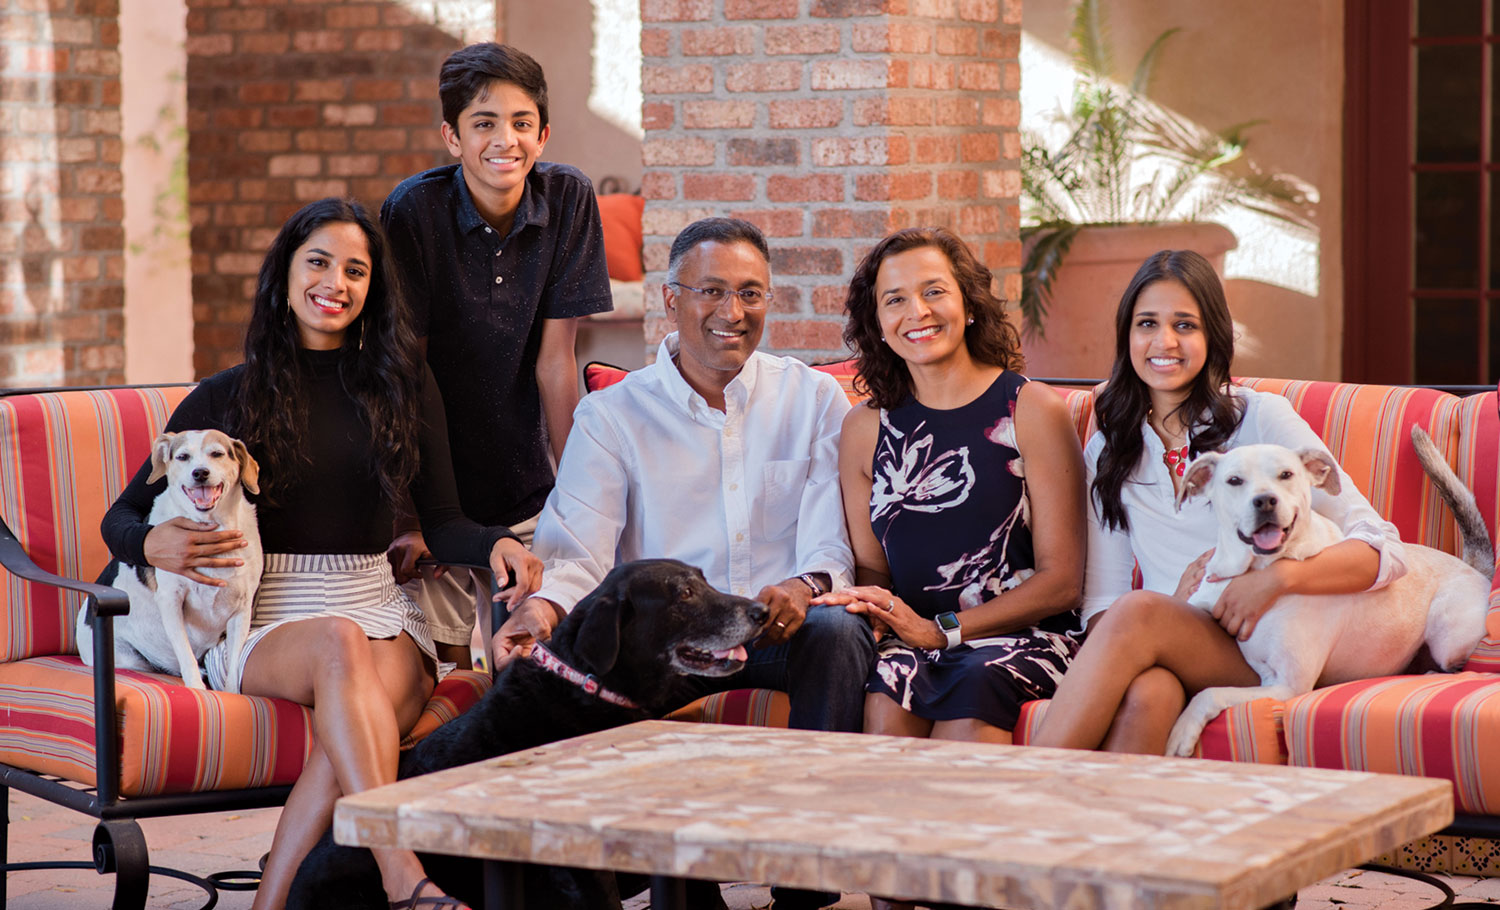 Photo courtesy Dr. Hiral Tipirneni; Dr. Hiral Tipirneni and her family at their home in north Glendale, 2017